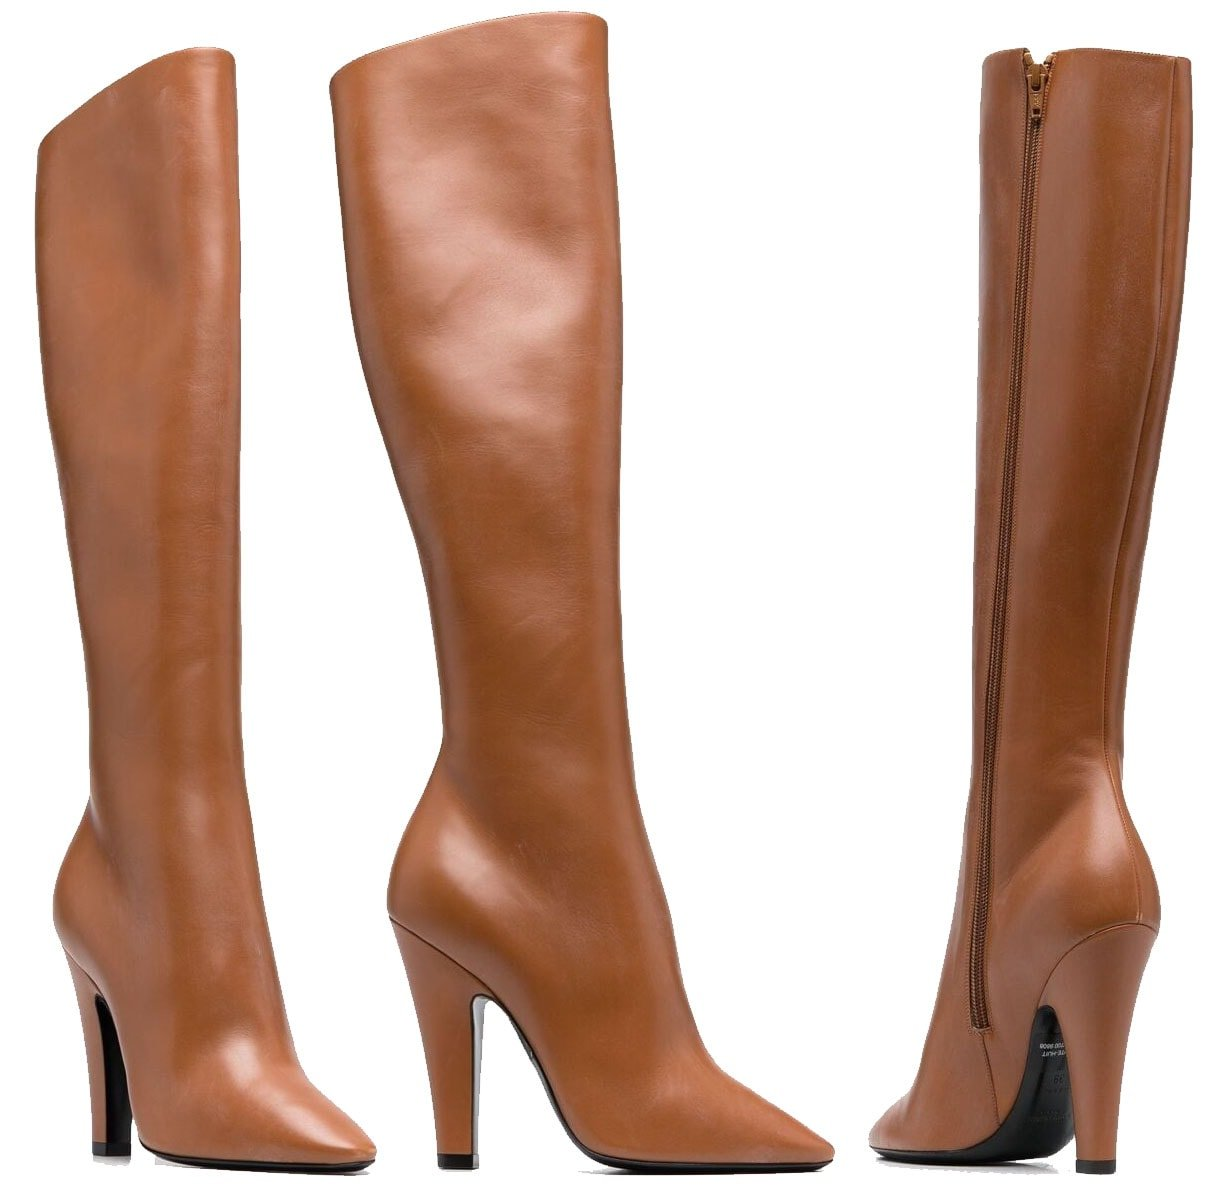 These Saint Laurent knee-high boots fit perfectly around ankles and are comfy around the shafts and knees